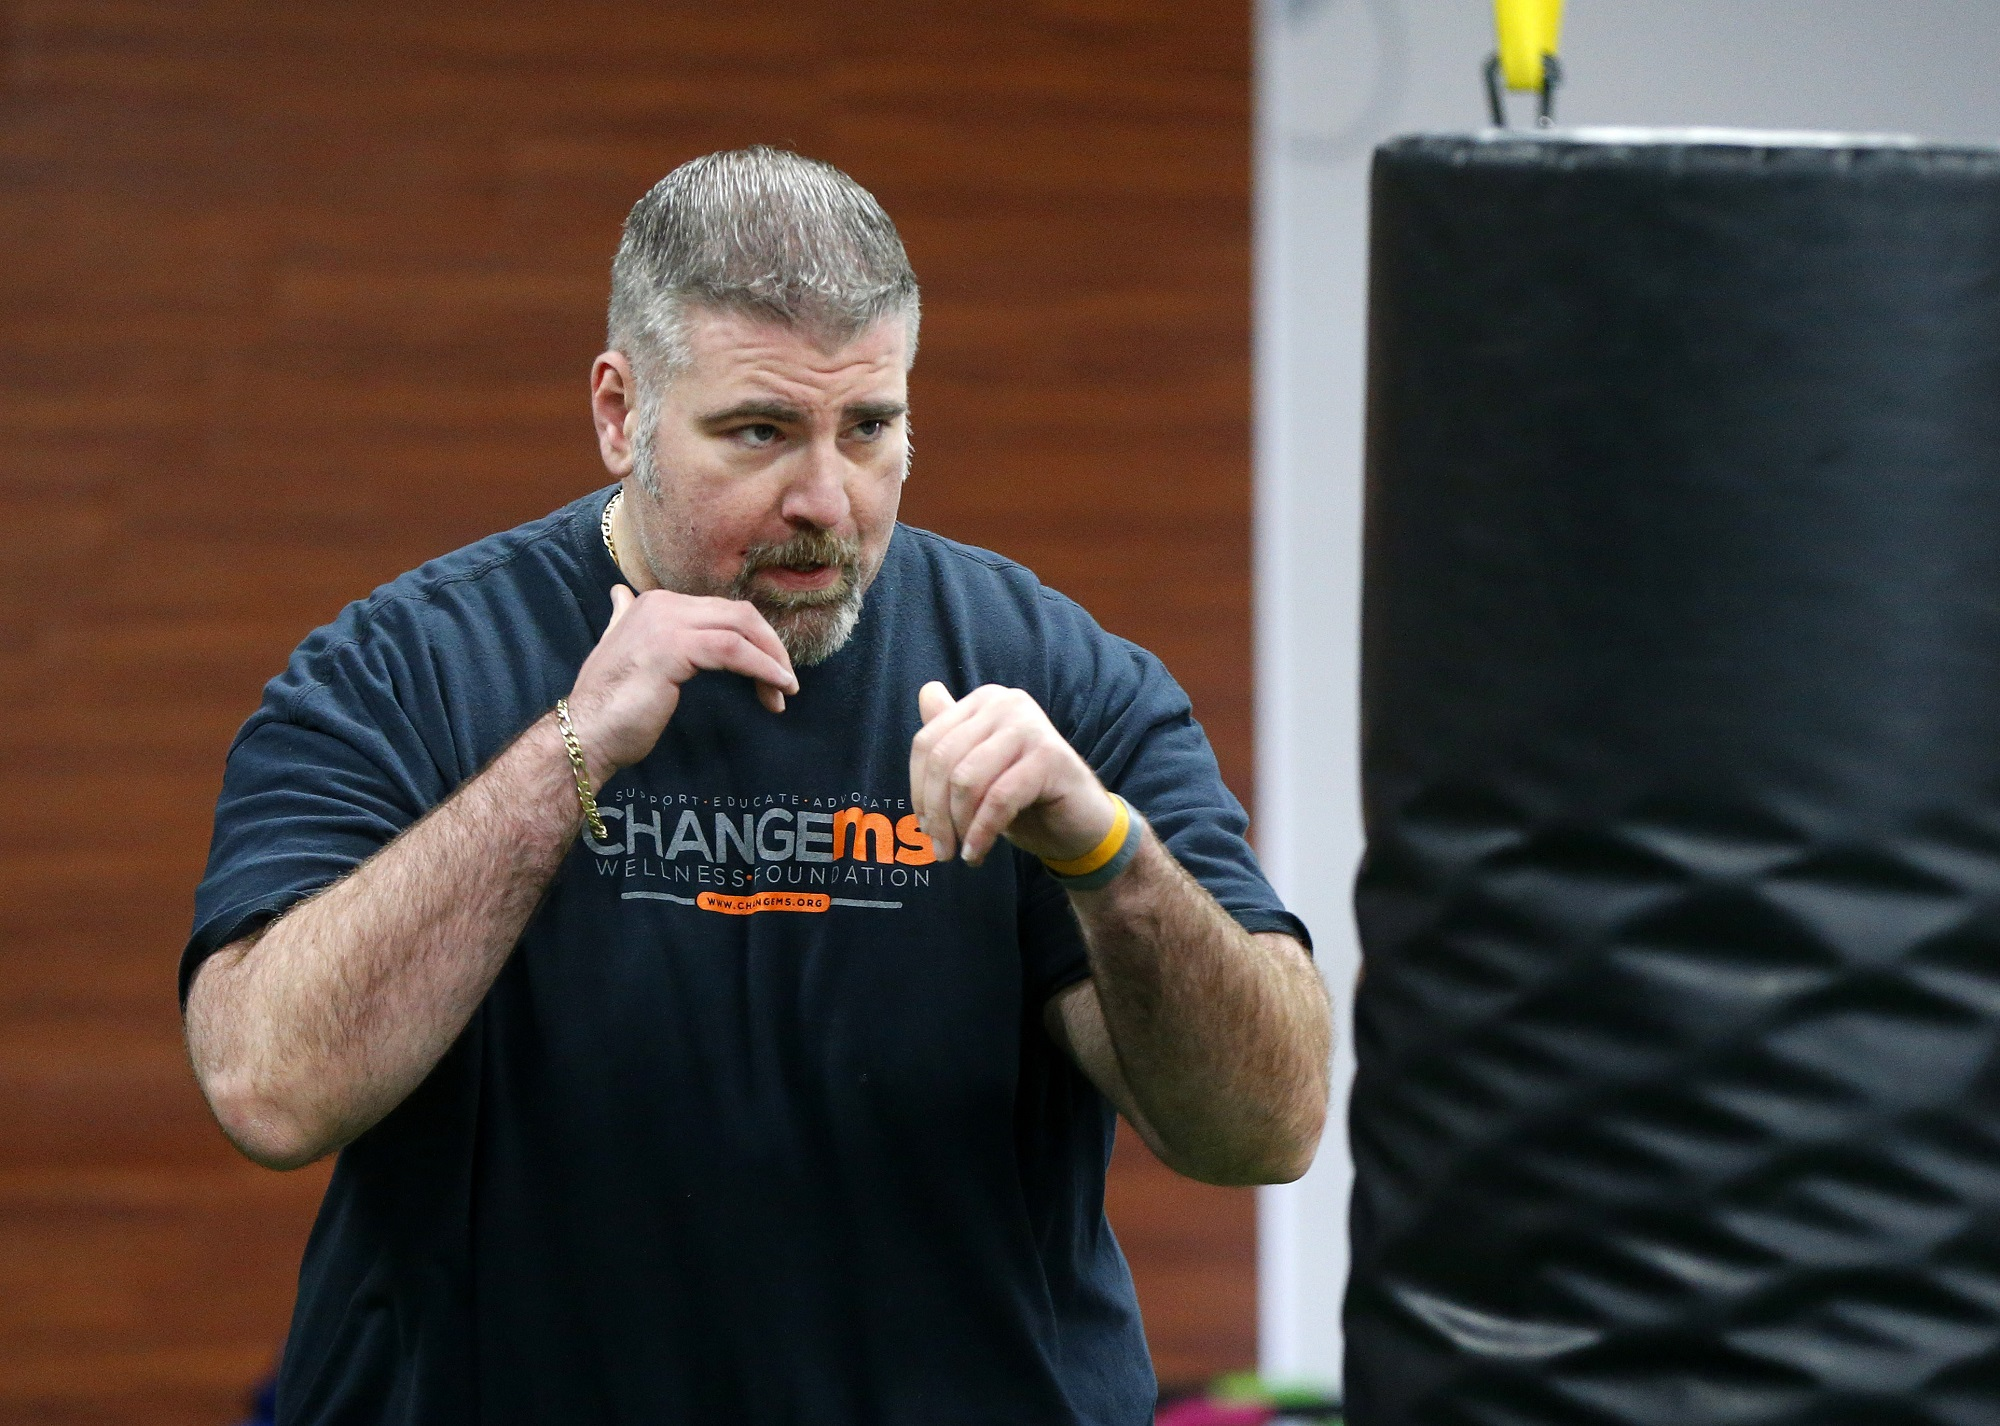 A maverick keeps multiple sclerosis at bay with diet and exercise